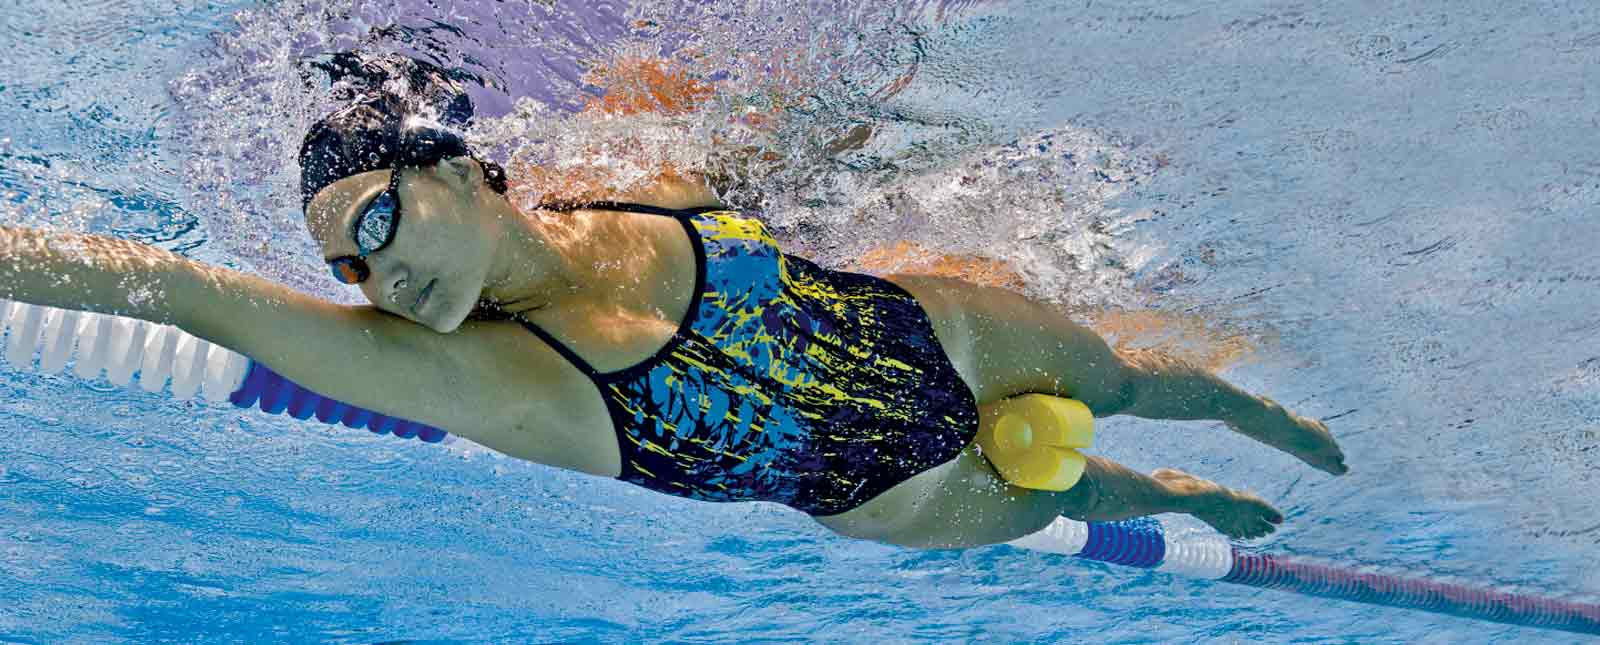 FINIS Set of the Week: Descending Pull Work